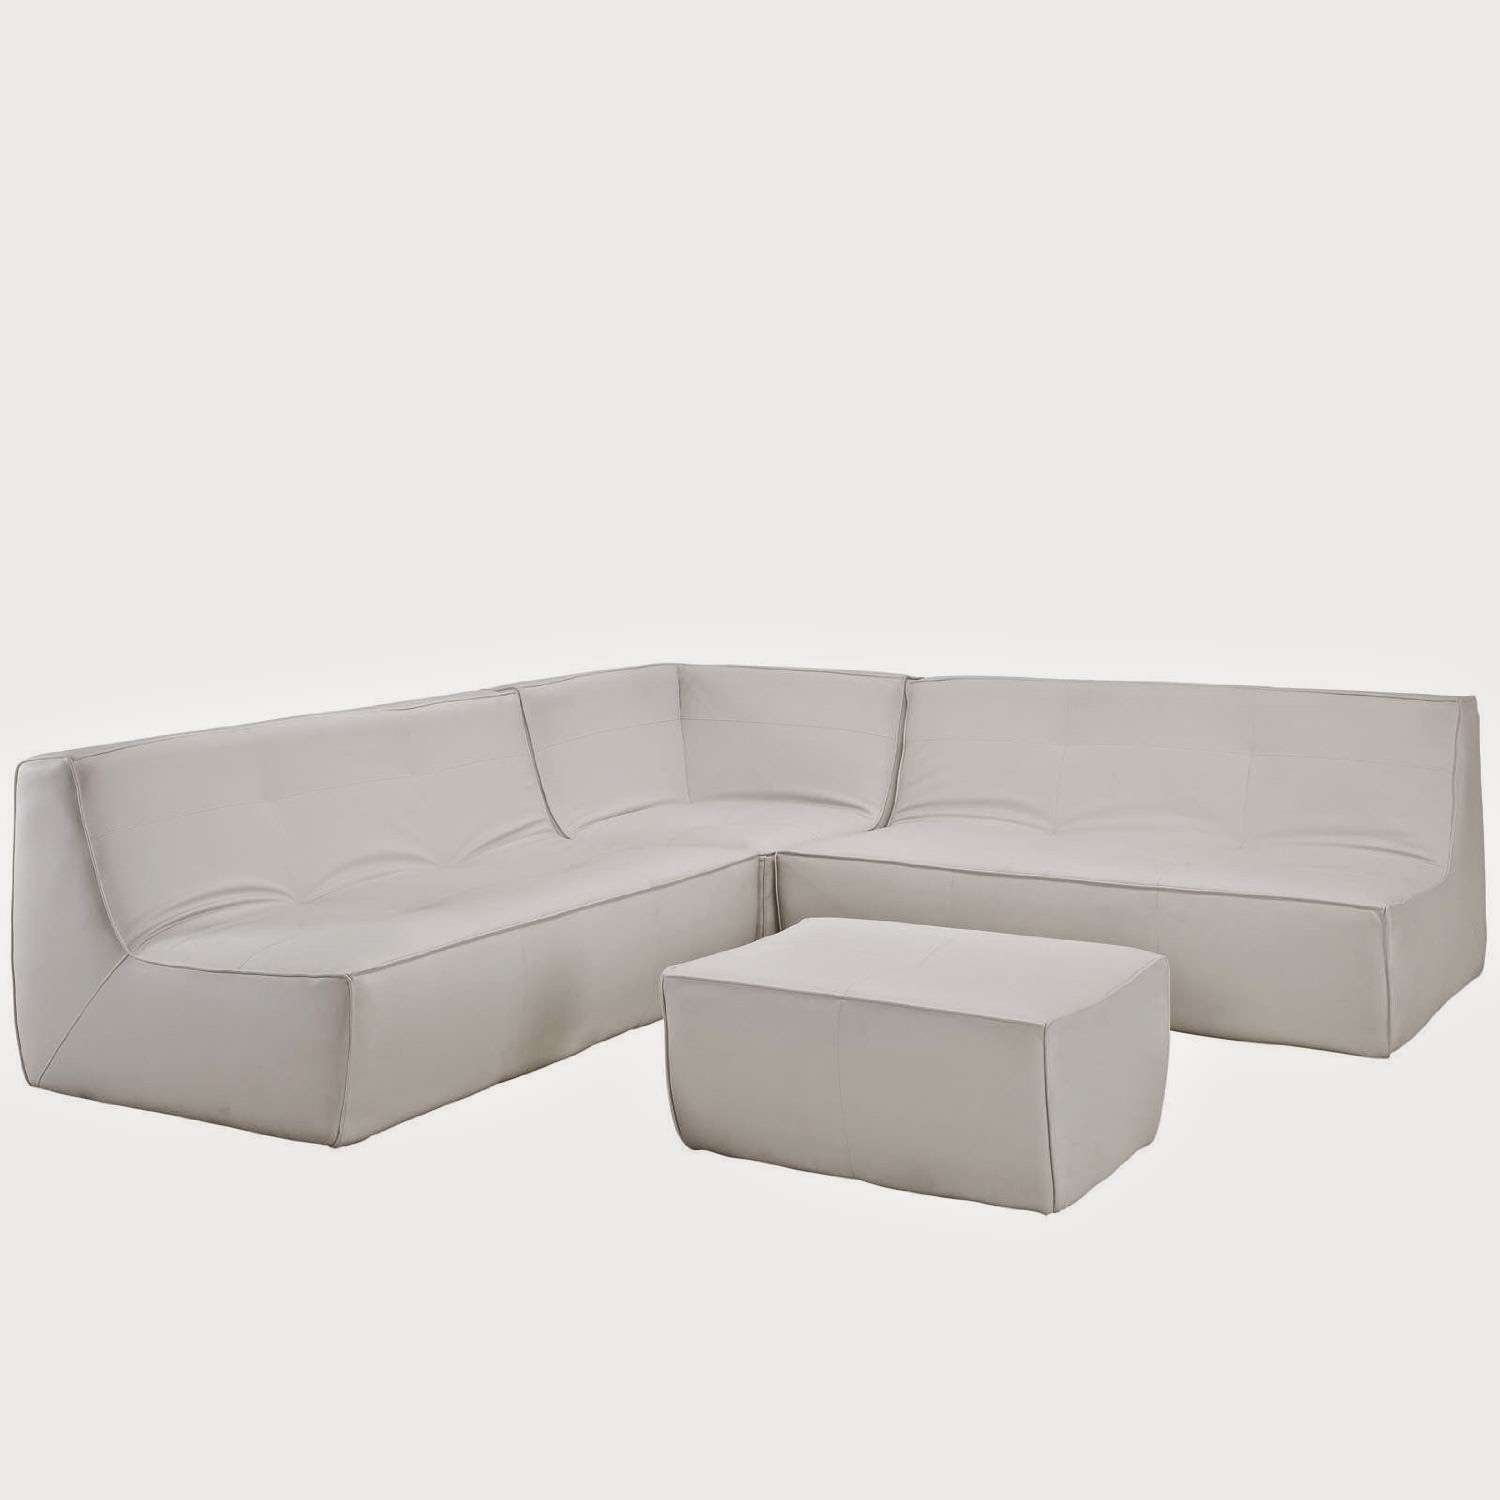 Curved sofa couch for sale curved contemporary sofa for Modern sofas for sale